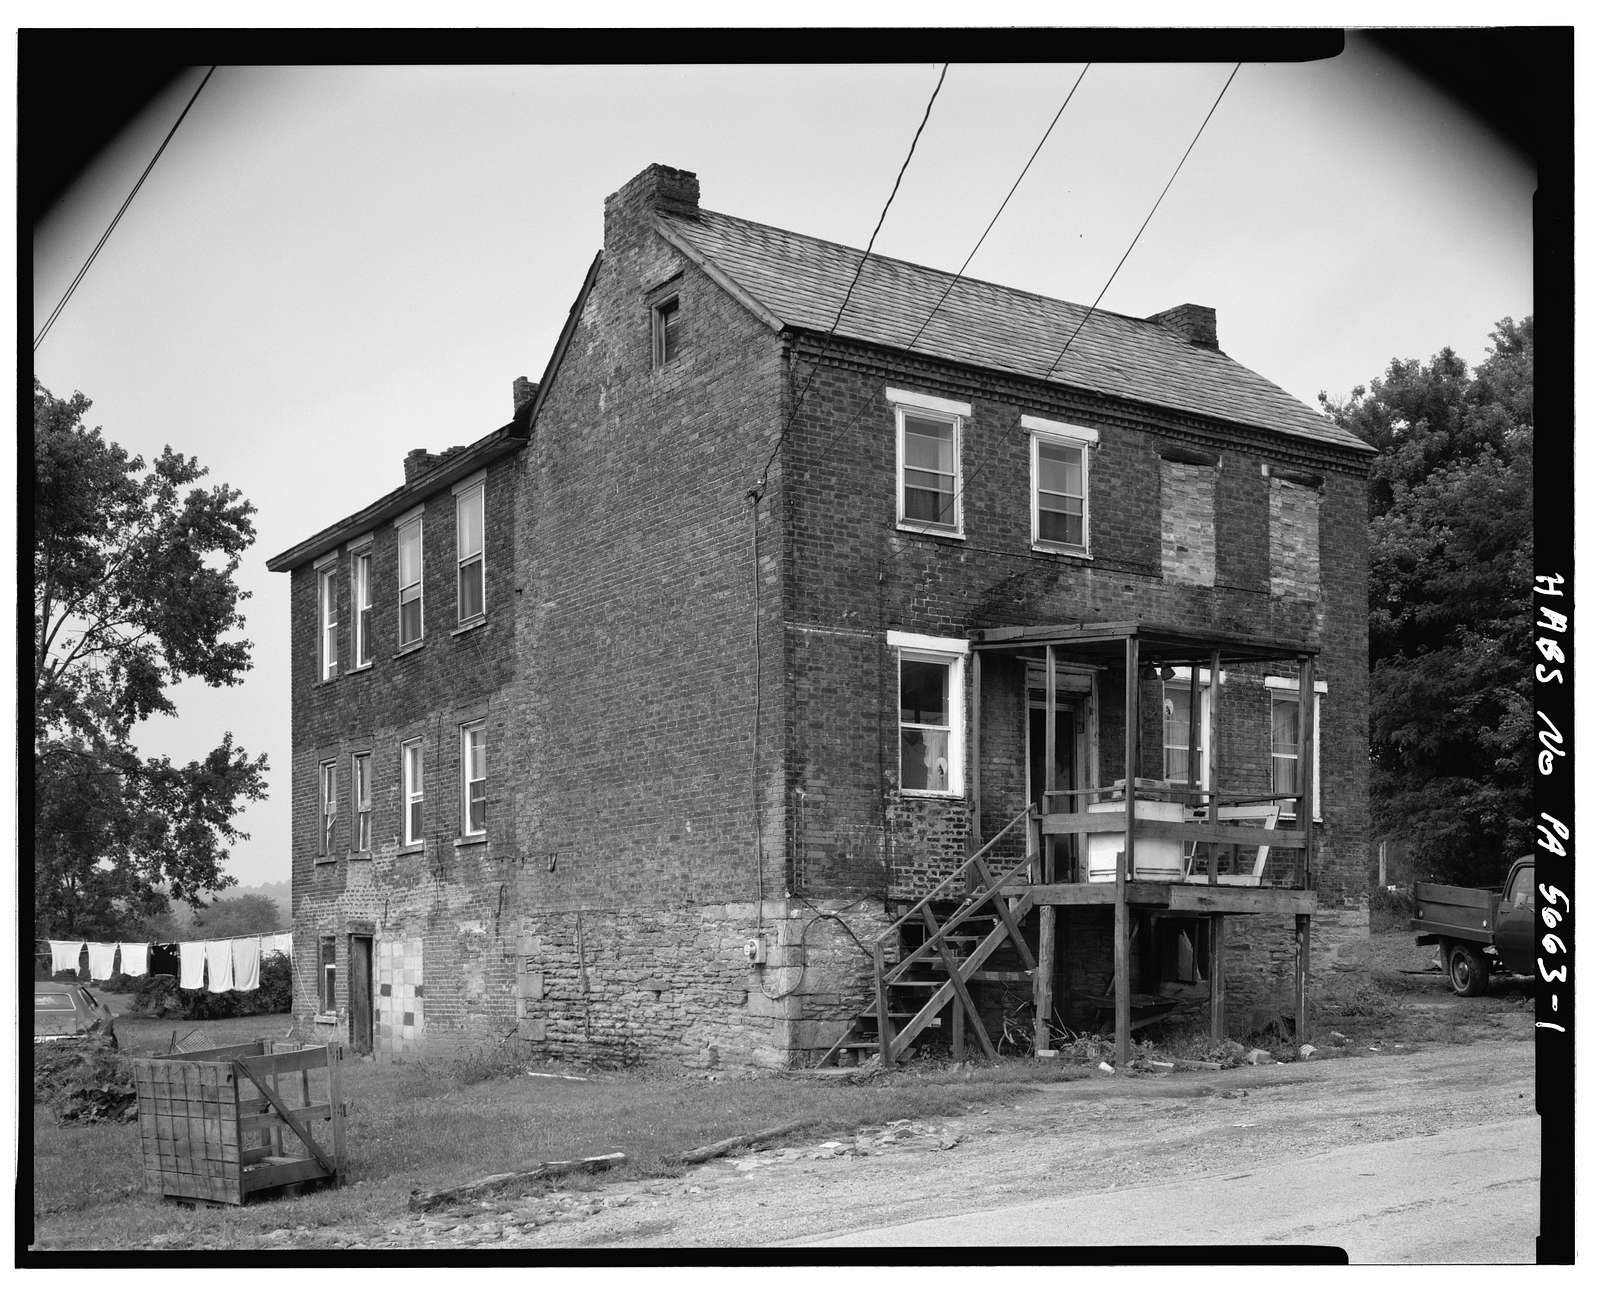 Overholt Company Workers House D, Frick Avenue, West Overton, Westmoreland County, PA